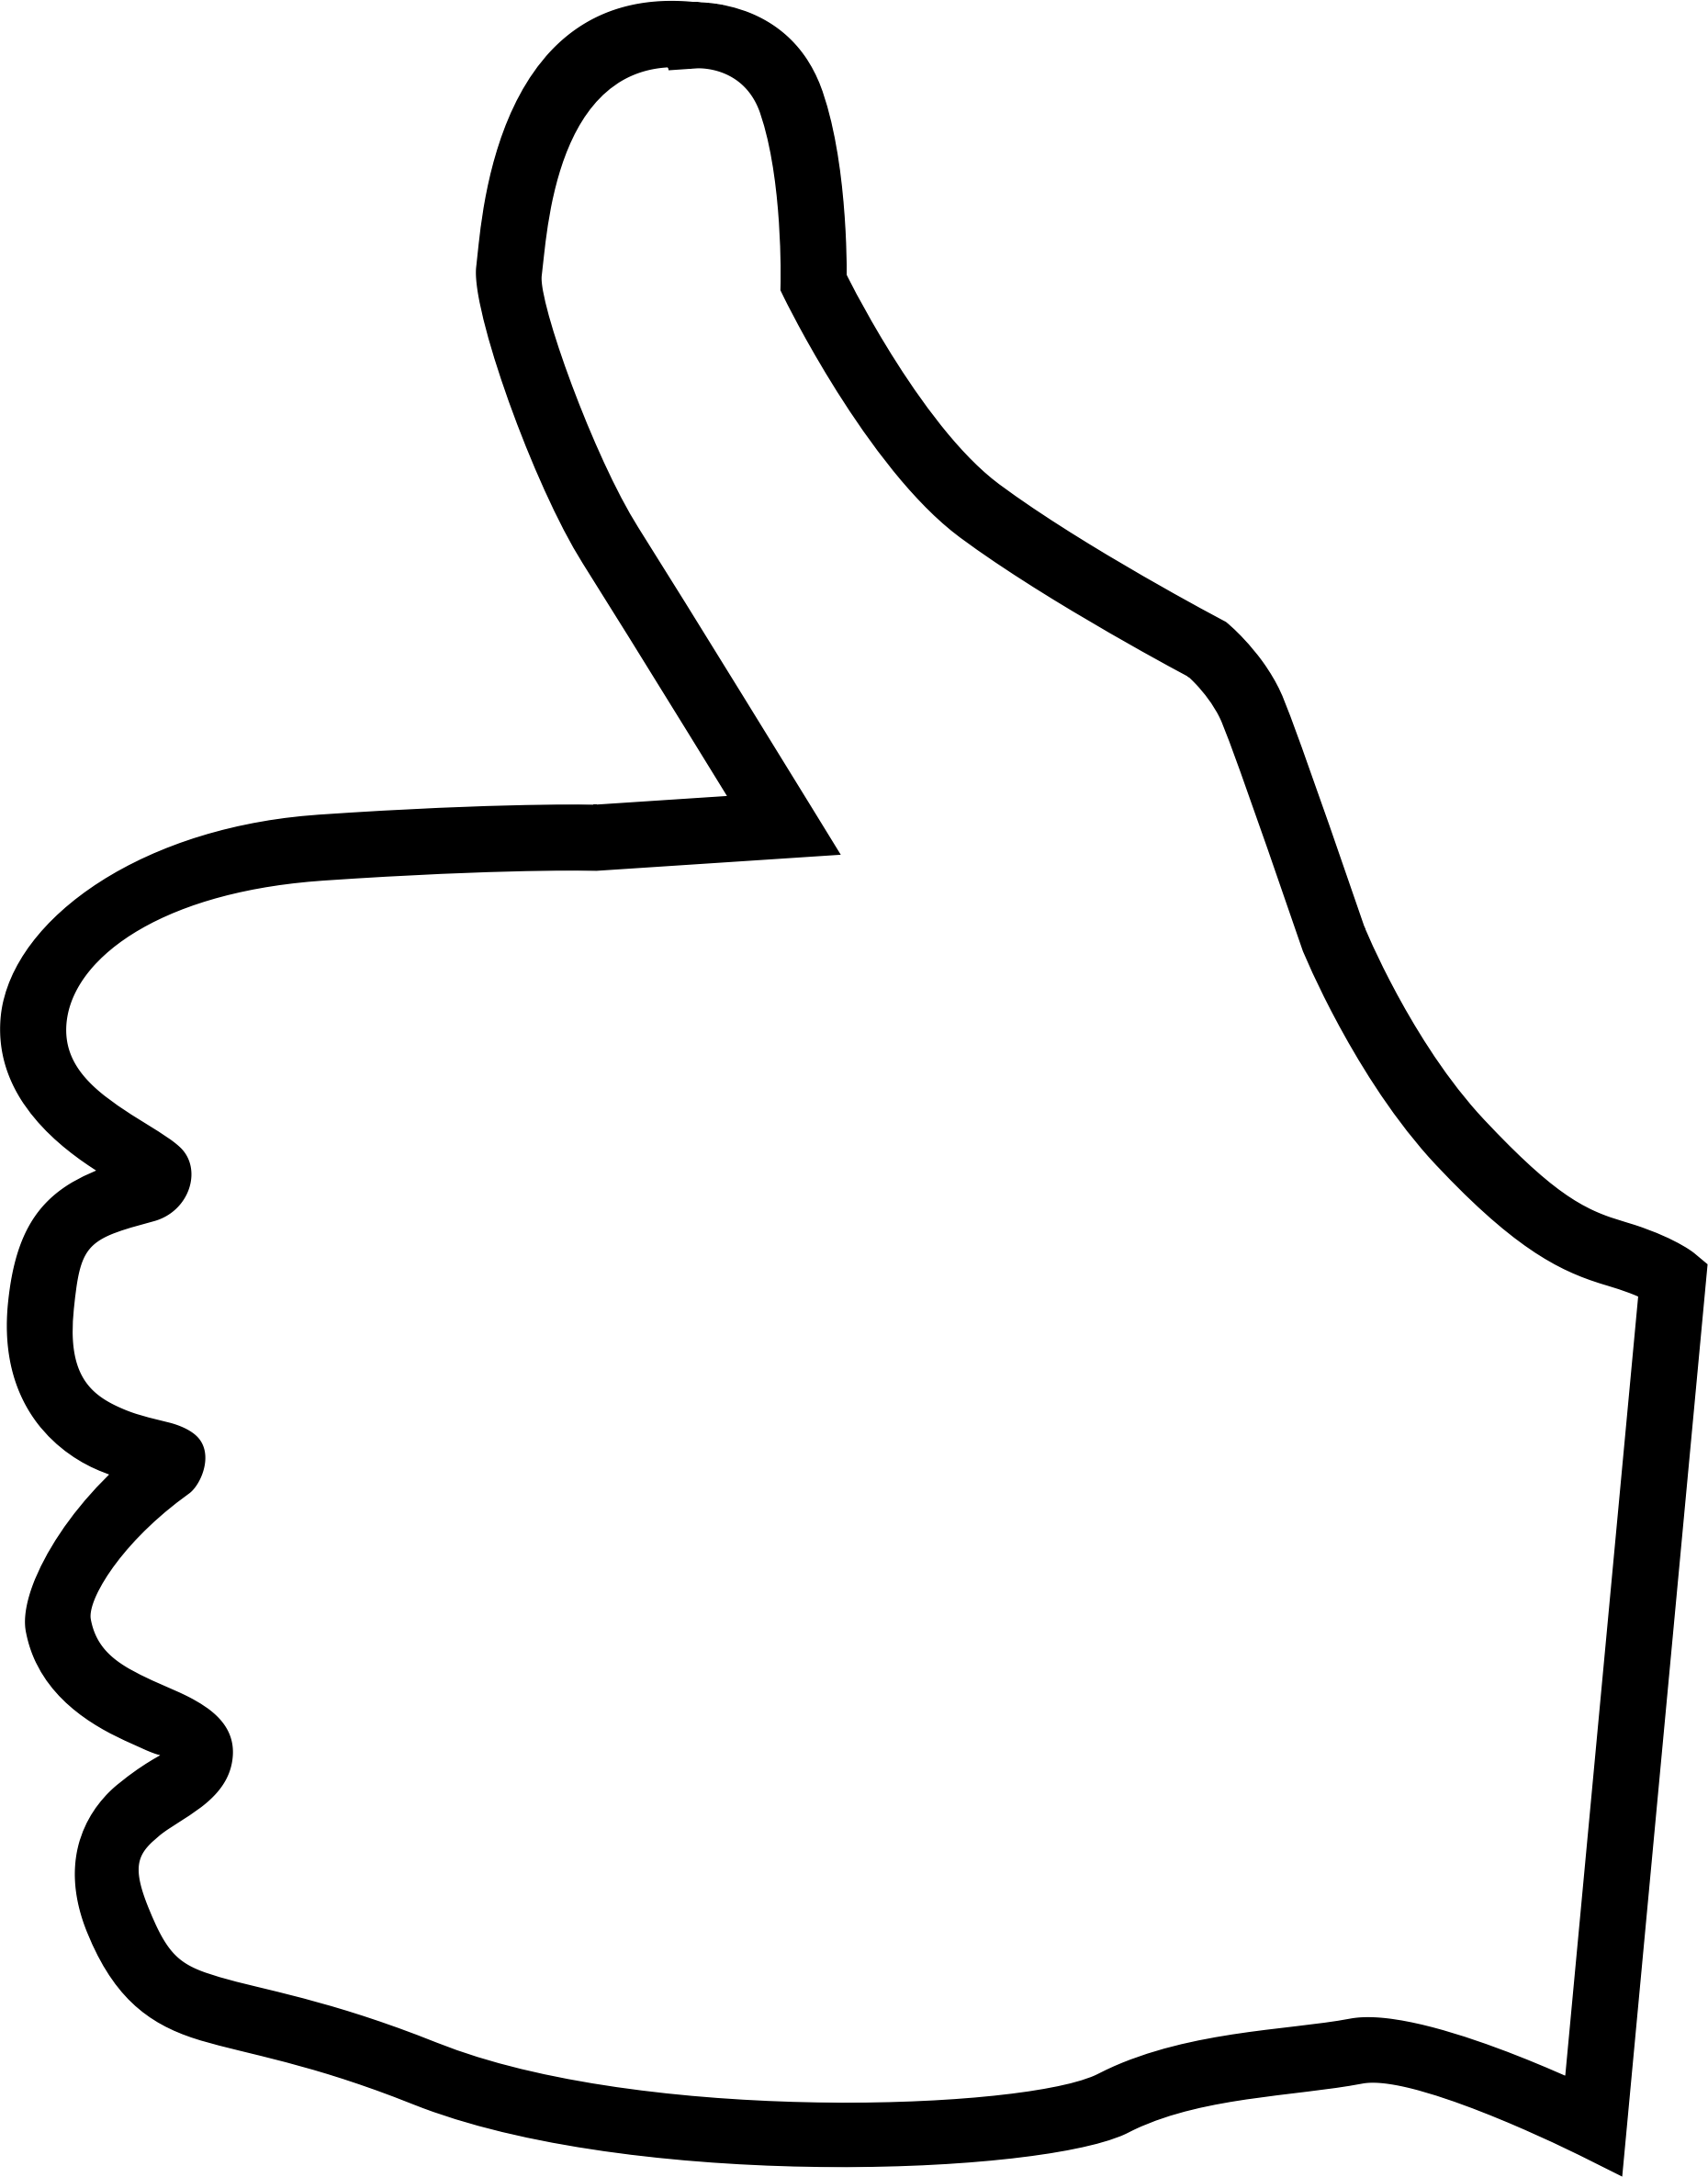 Thumbs up down clipart clip free stock Black And White Thumbs Up | Free download best Black And White ... clip free stock